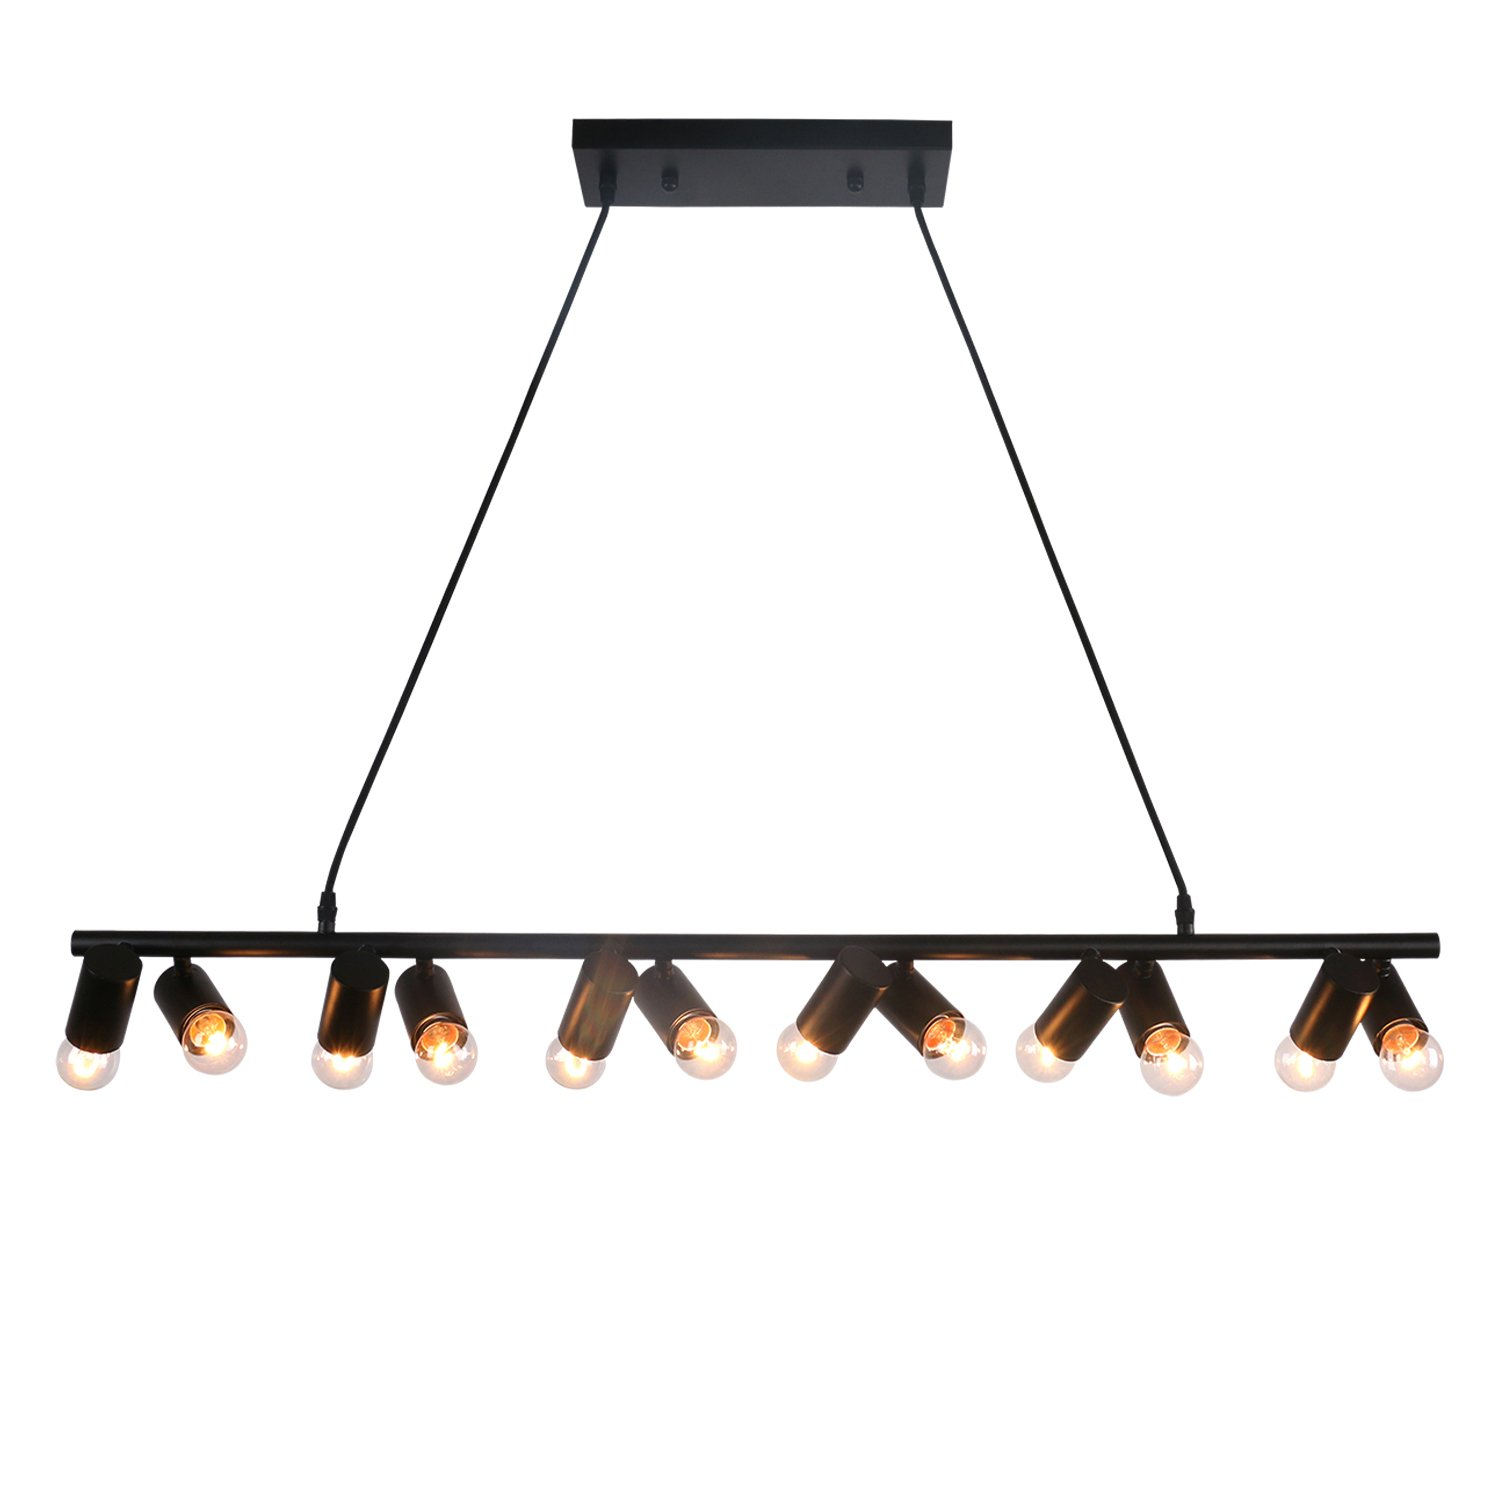 Unitary Brand Modern Black Metal Linear Dining Room Island Light with 12 E26 Bulb Sockets 480W Painted Finish